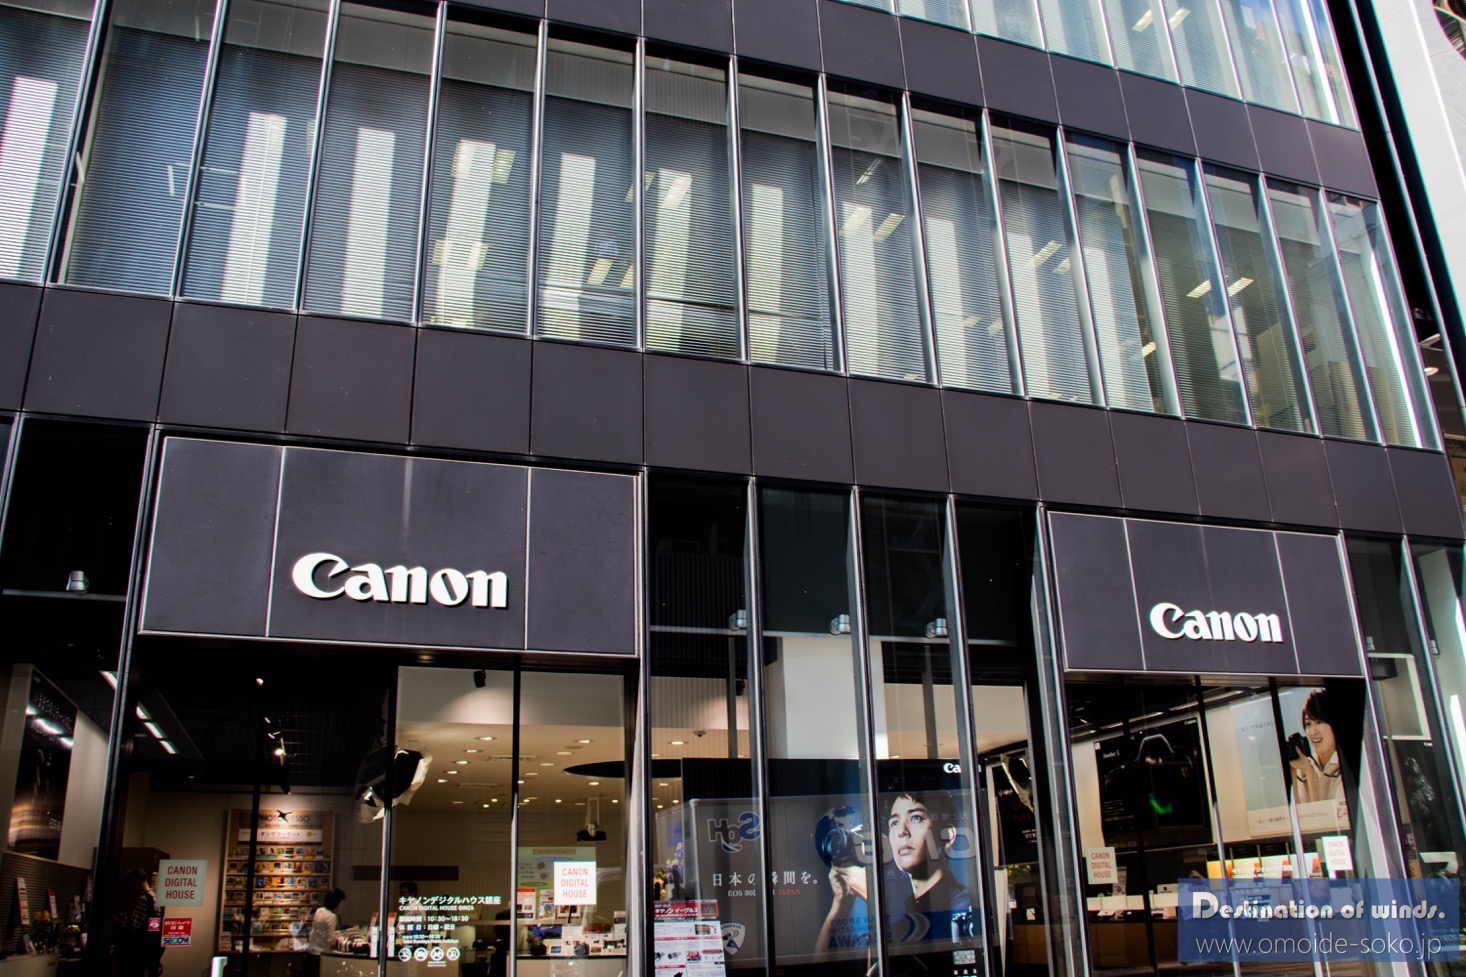 sony_canon_showroom21